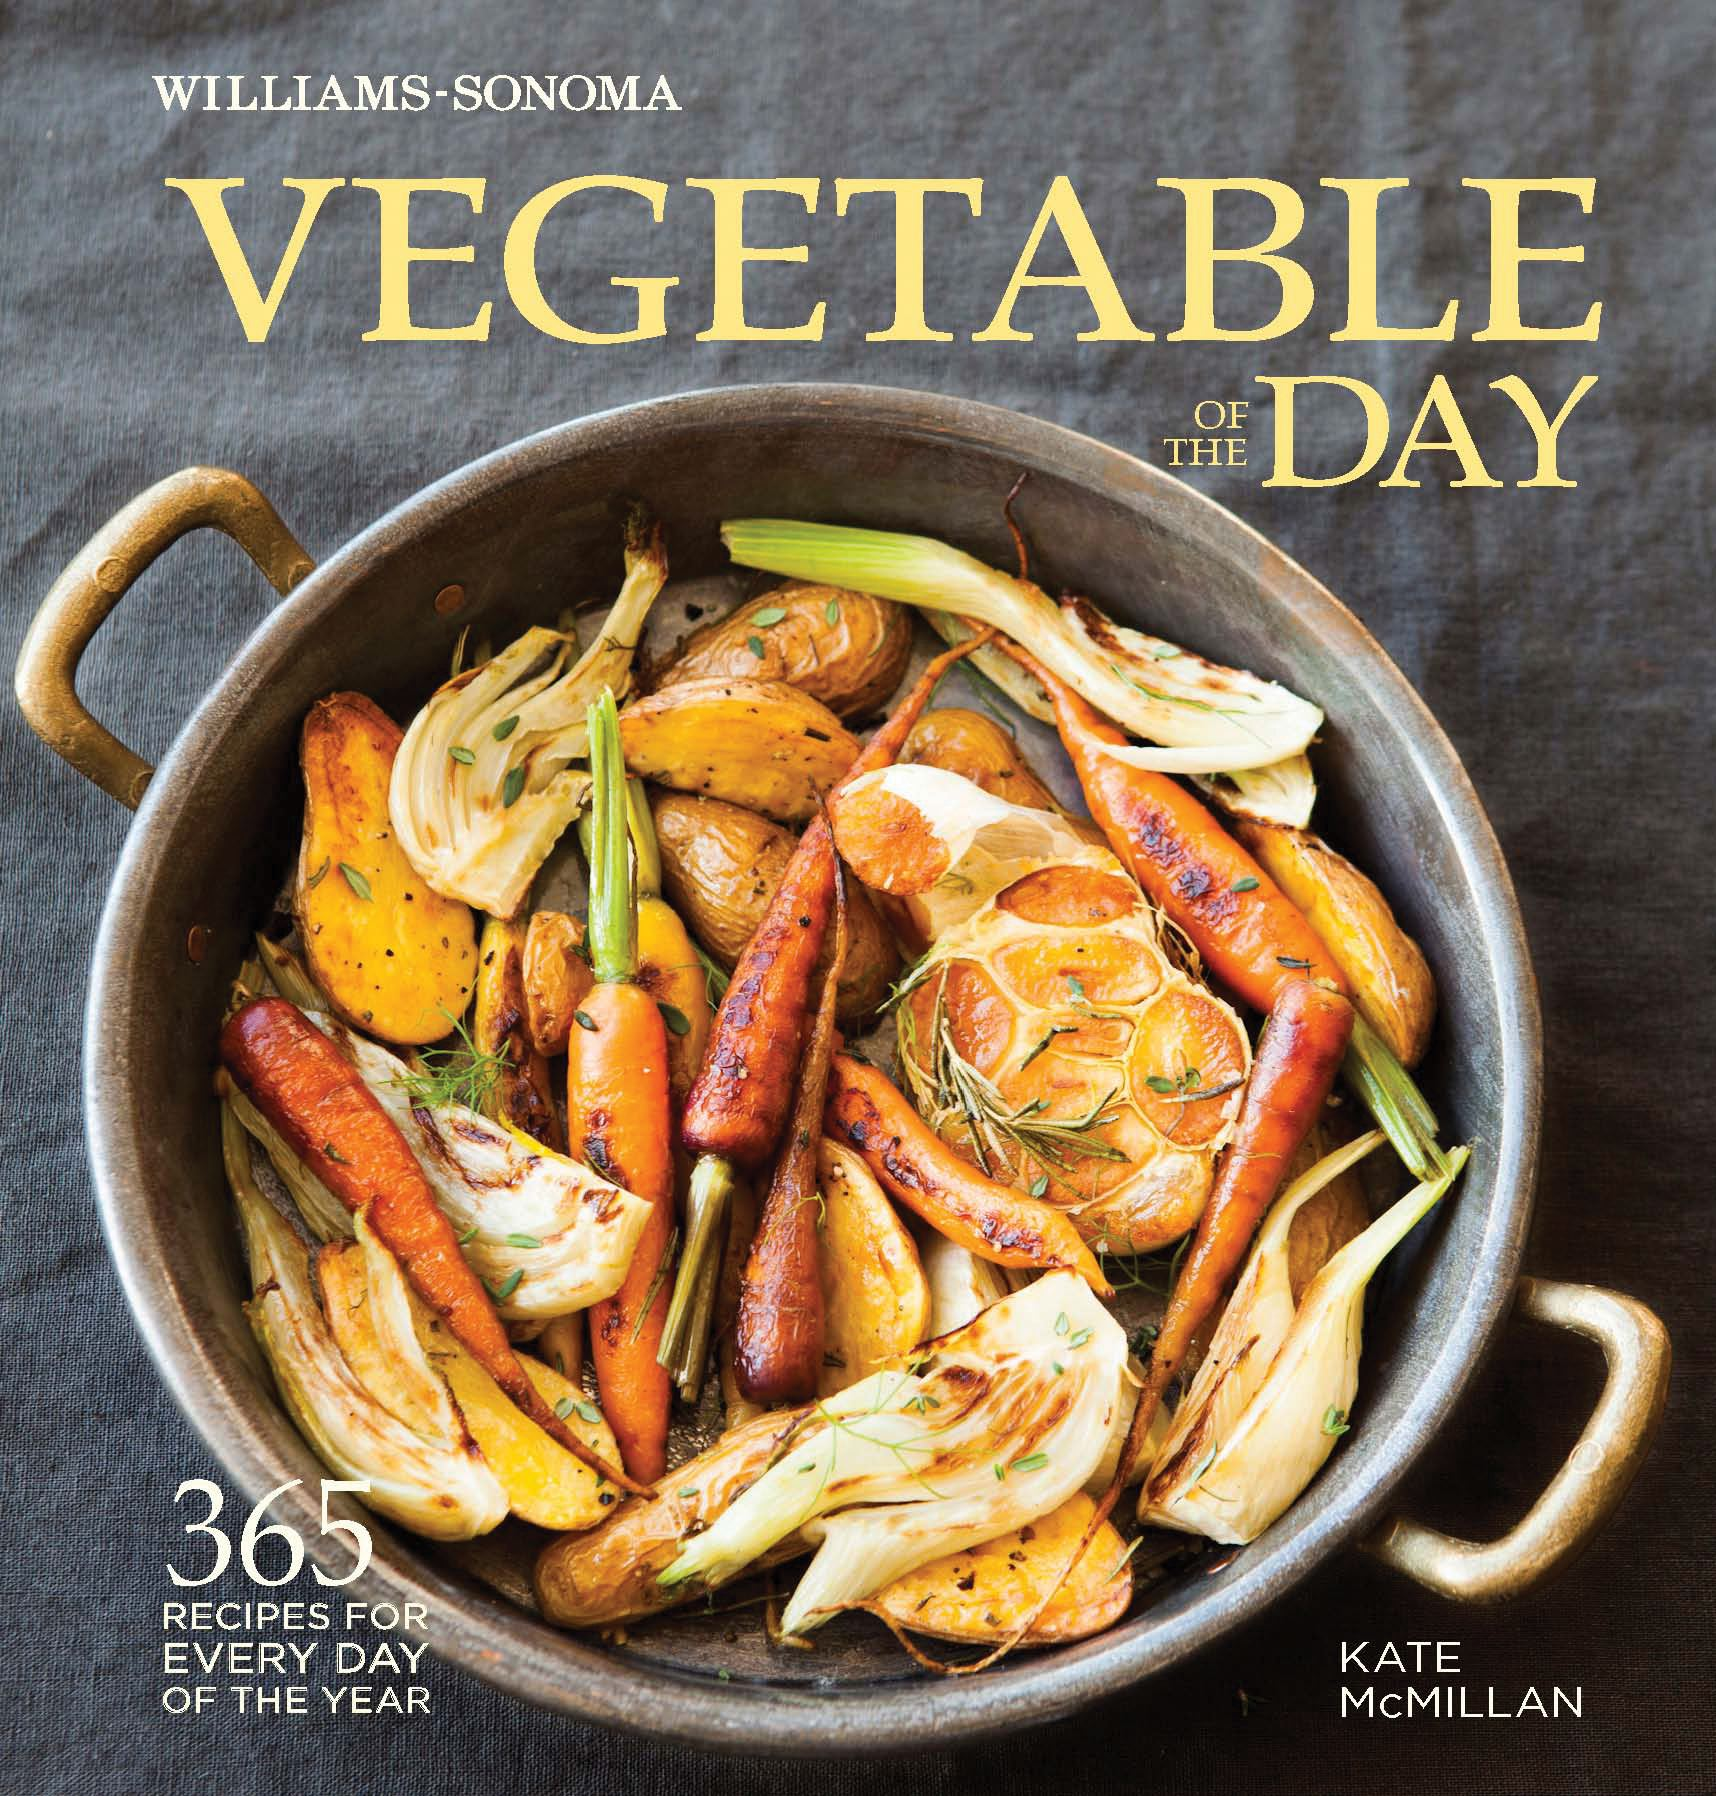 Vegetable of the Day (Williams-Sonoma) : 365 Recipes for Every Day of the Year